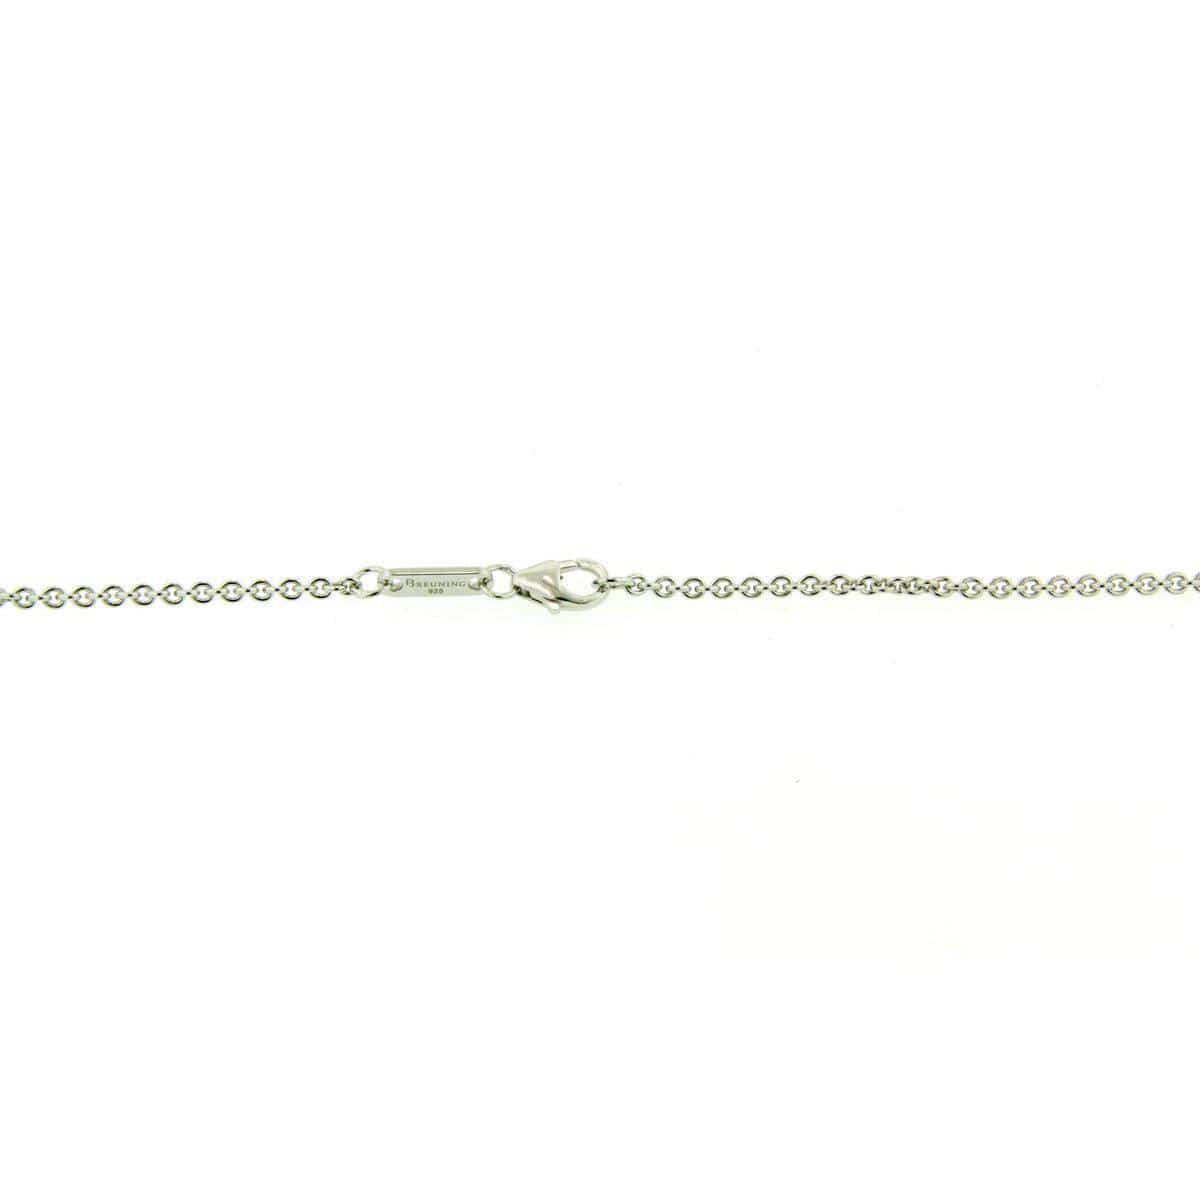 Rhodium Plated Sterling Silver Single Cable Chain - 64/01175-Breuning-Renee Taylor Gallery